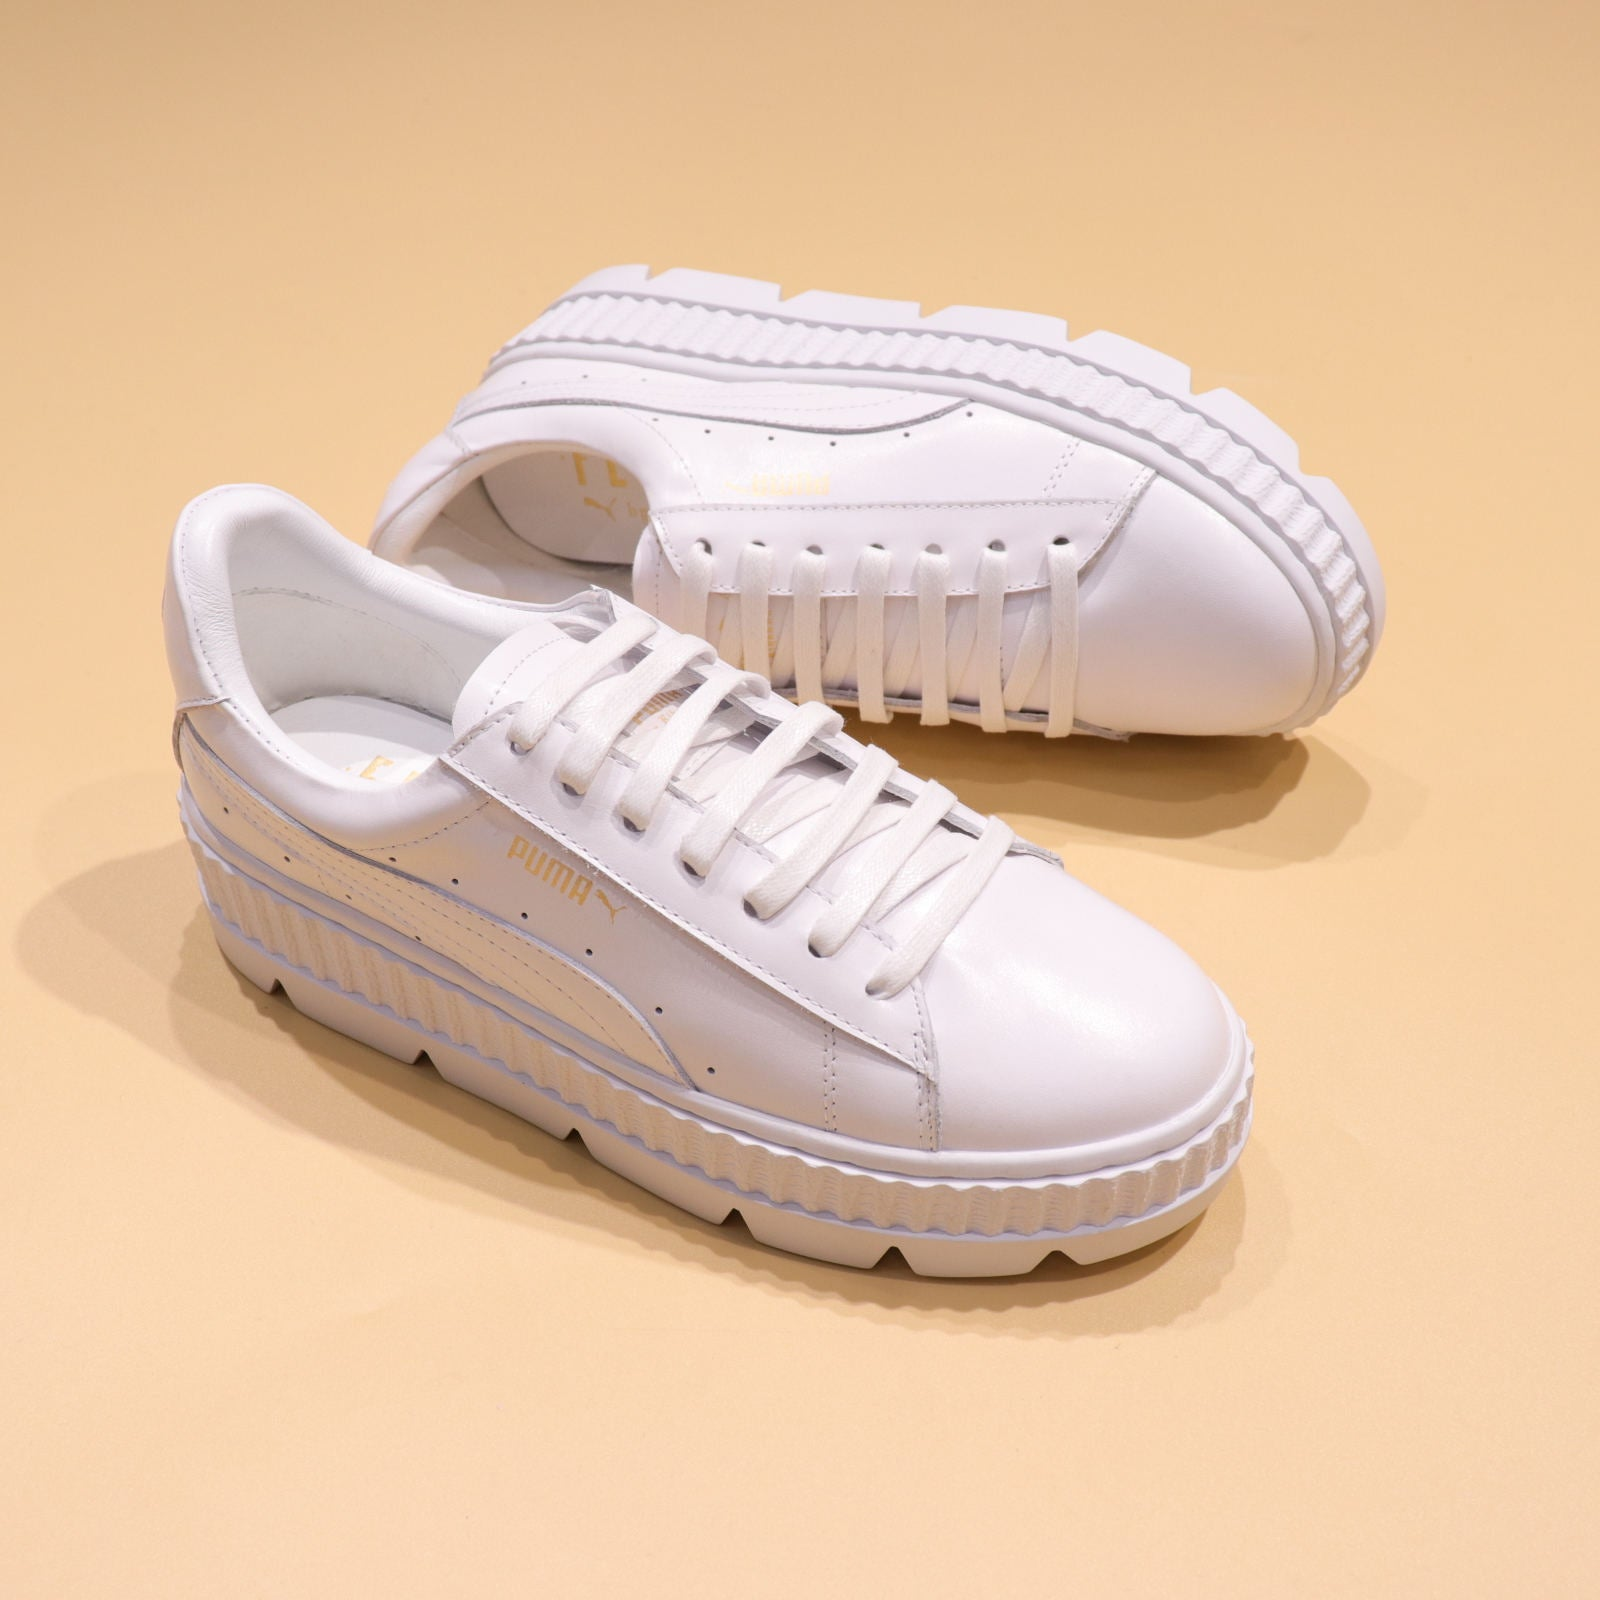 f28b55a7e29695 Rihanna x Puma Fenty Cleated Creeper  White